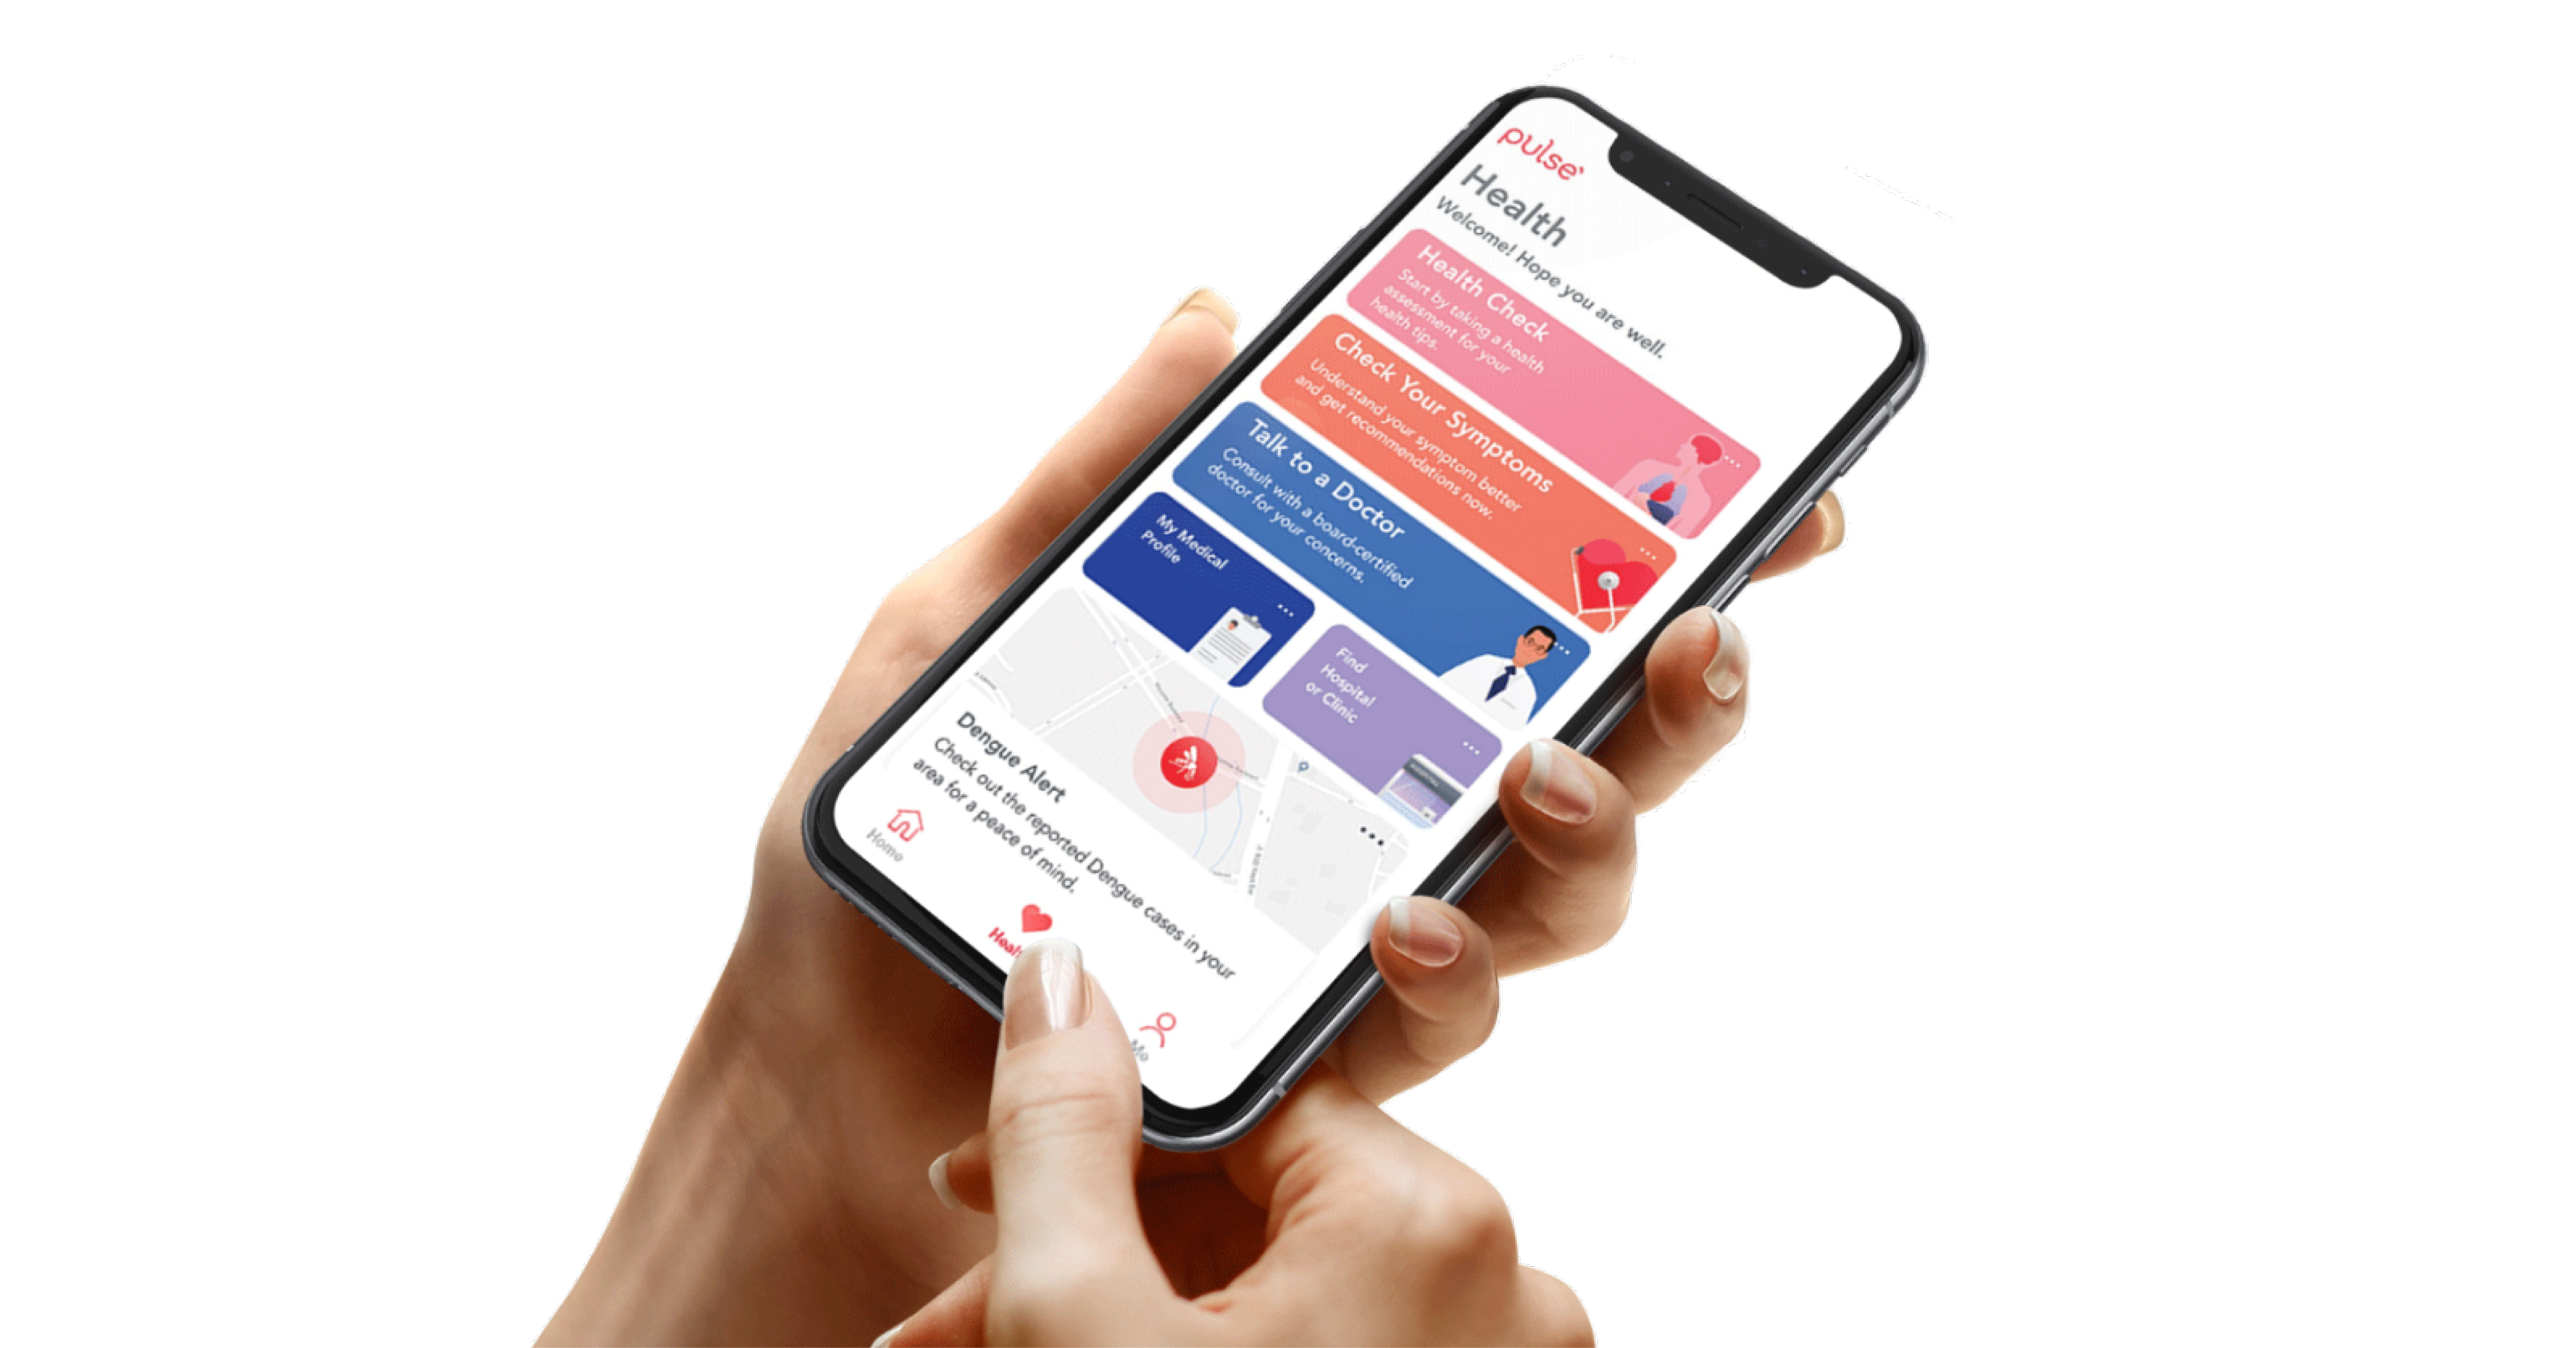 Prudential Thailand partners with MyDoc to launch telemedicine and online consultation services on Pulse by Prudential app